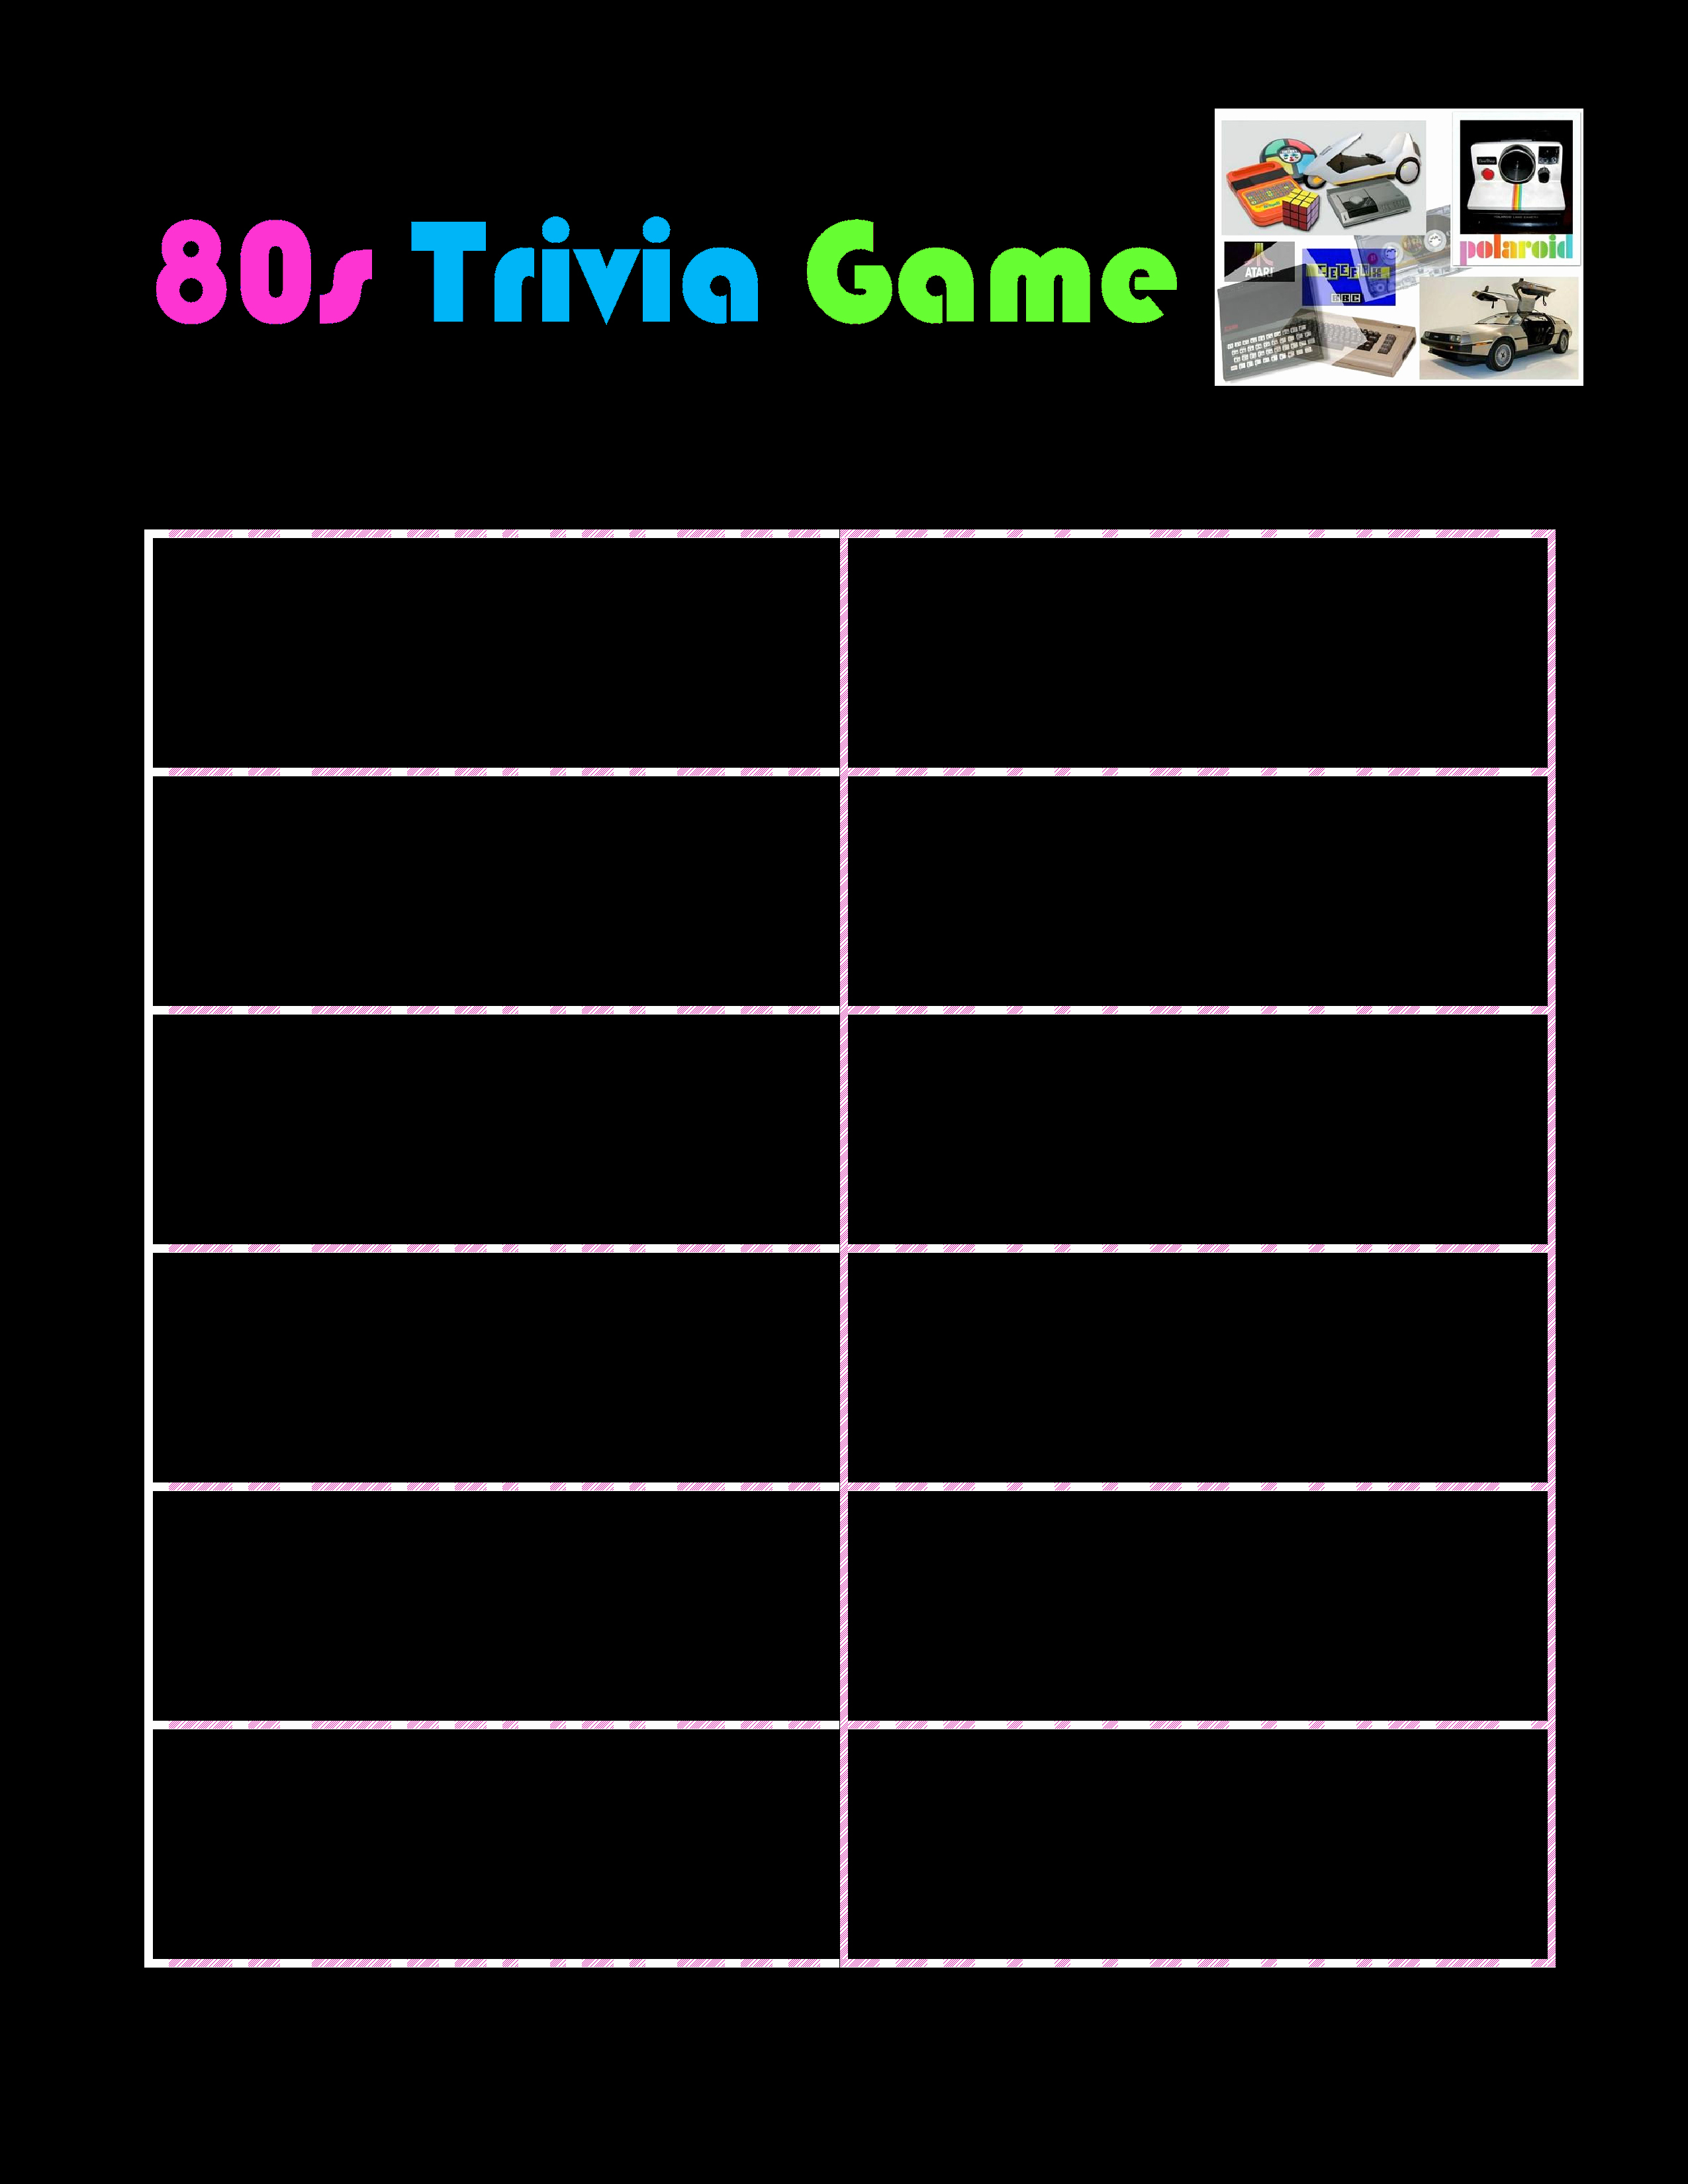 Questions and Answers Template Luxury Free Printable 80s Trivia Game